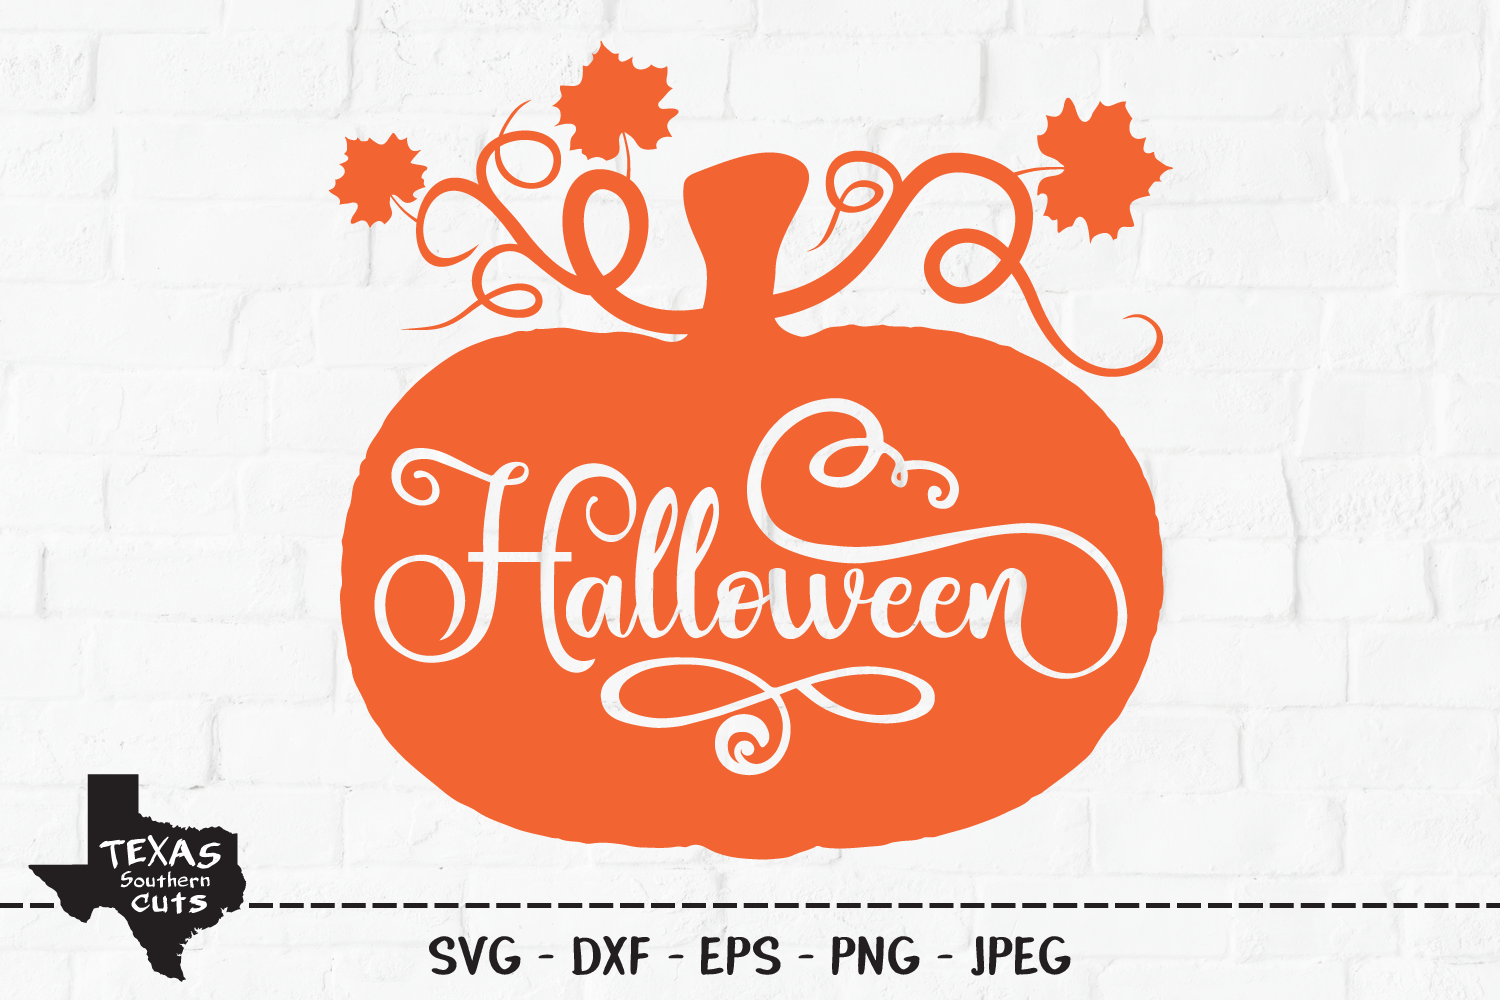 Download Free Halloween Pumpkin Design Graphic By Texassoutherncuts Creative for Cricut Explore, Silhouette and other cutting machines.